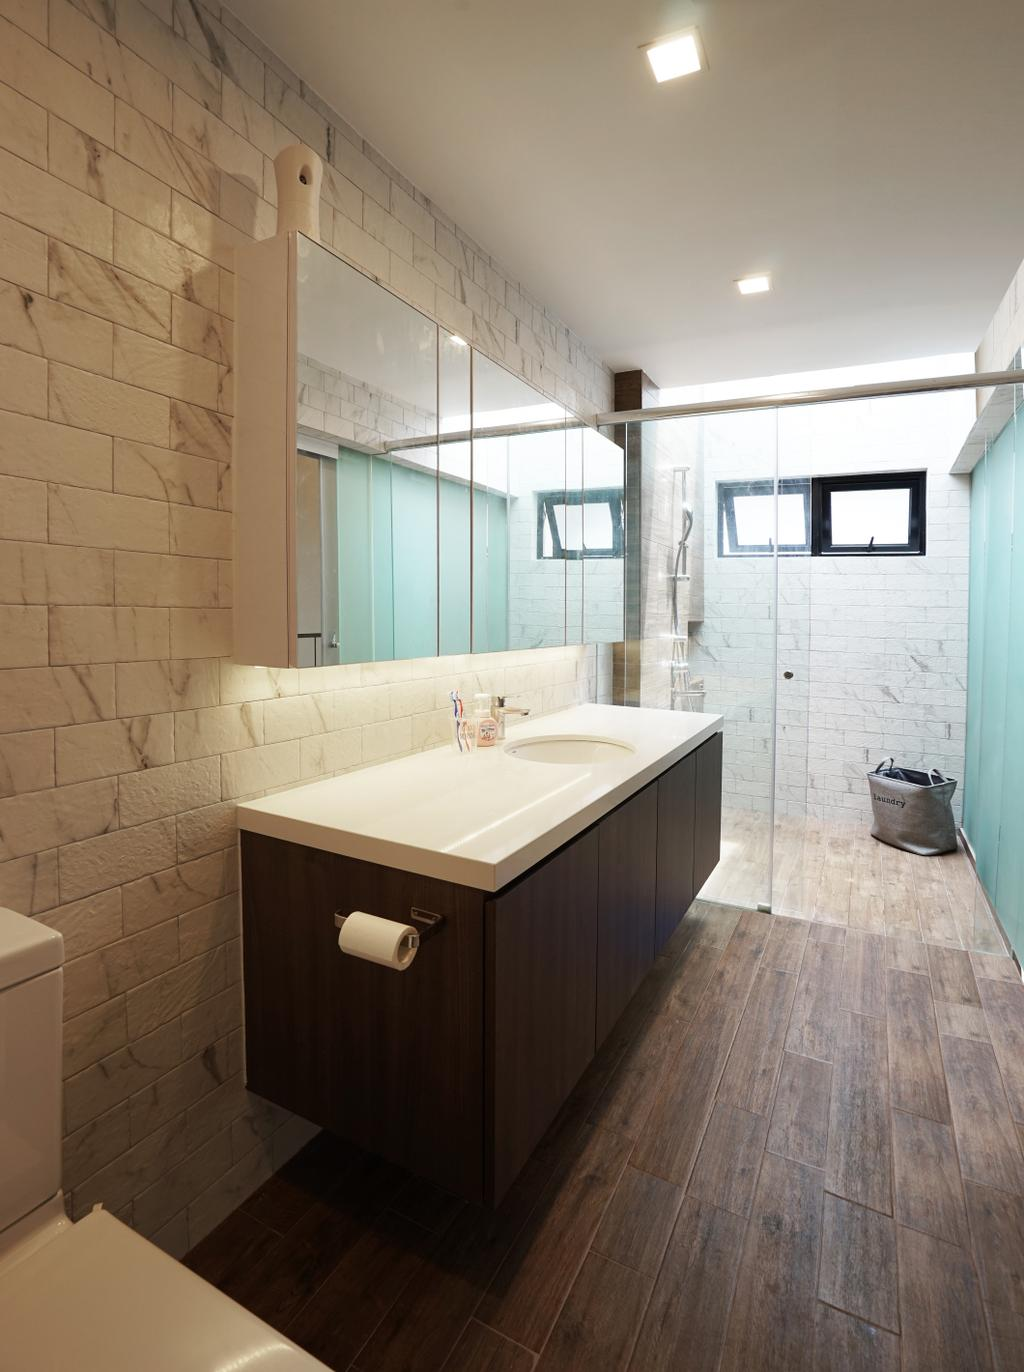 Landed, Bathroom, Tai Hwan Terrace, Interior Designer, Metamorph Design, Indoors, Interior Design, Room, Jacuzzi, Tub